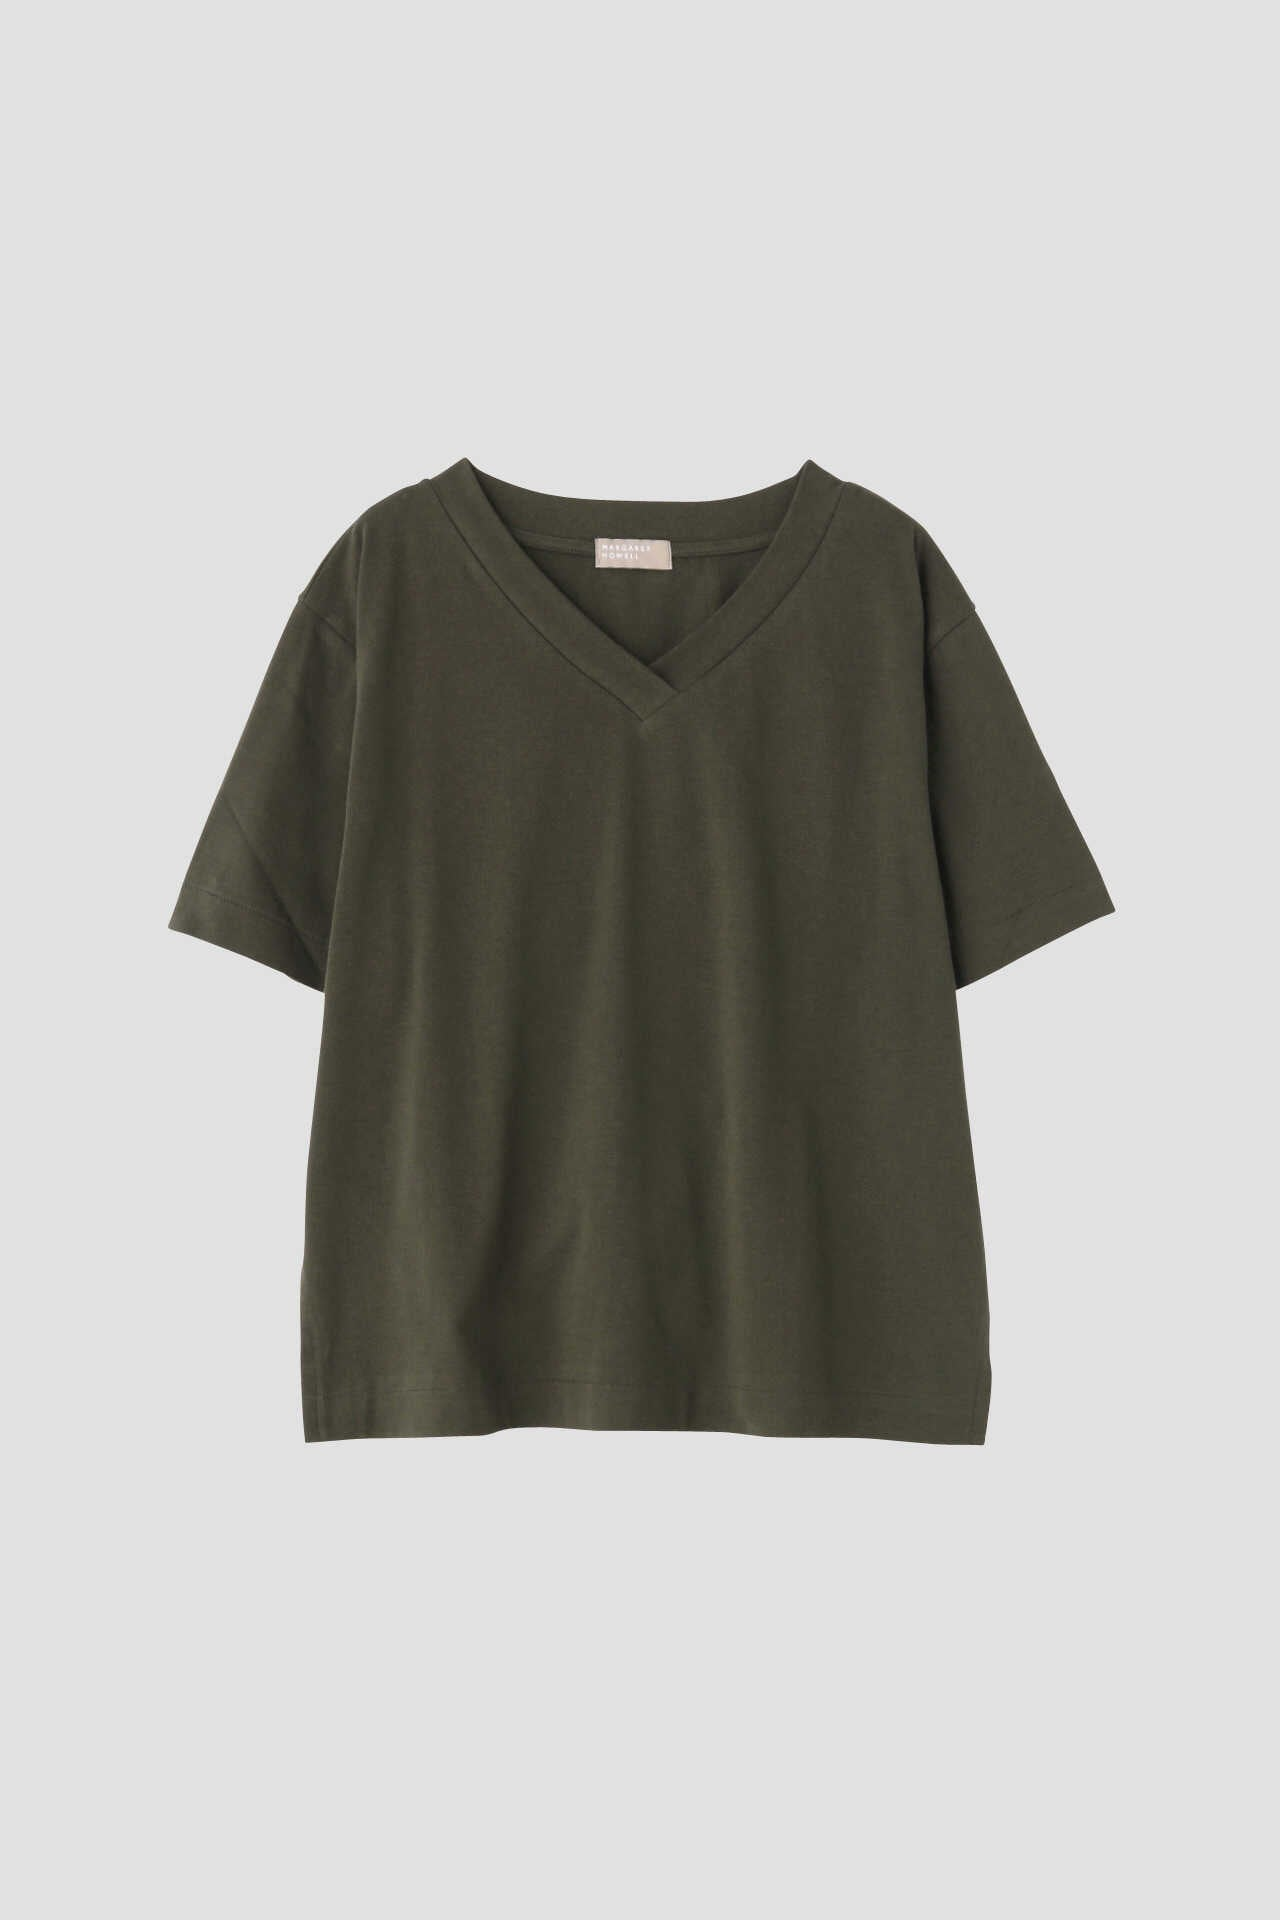 COTTON V NECK T SHIRT11